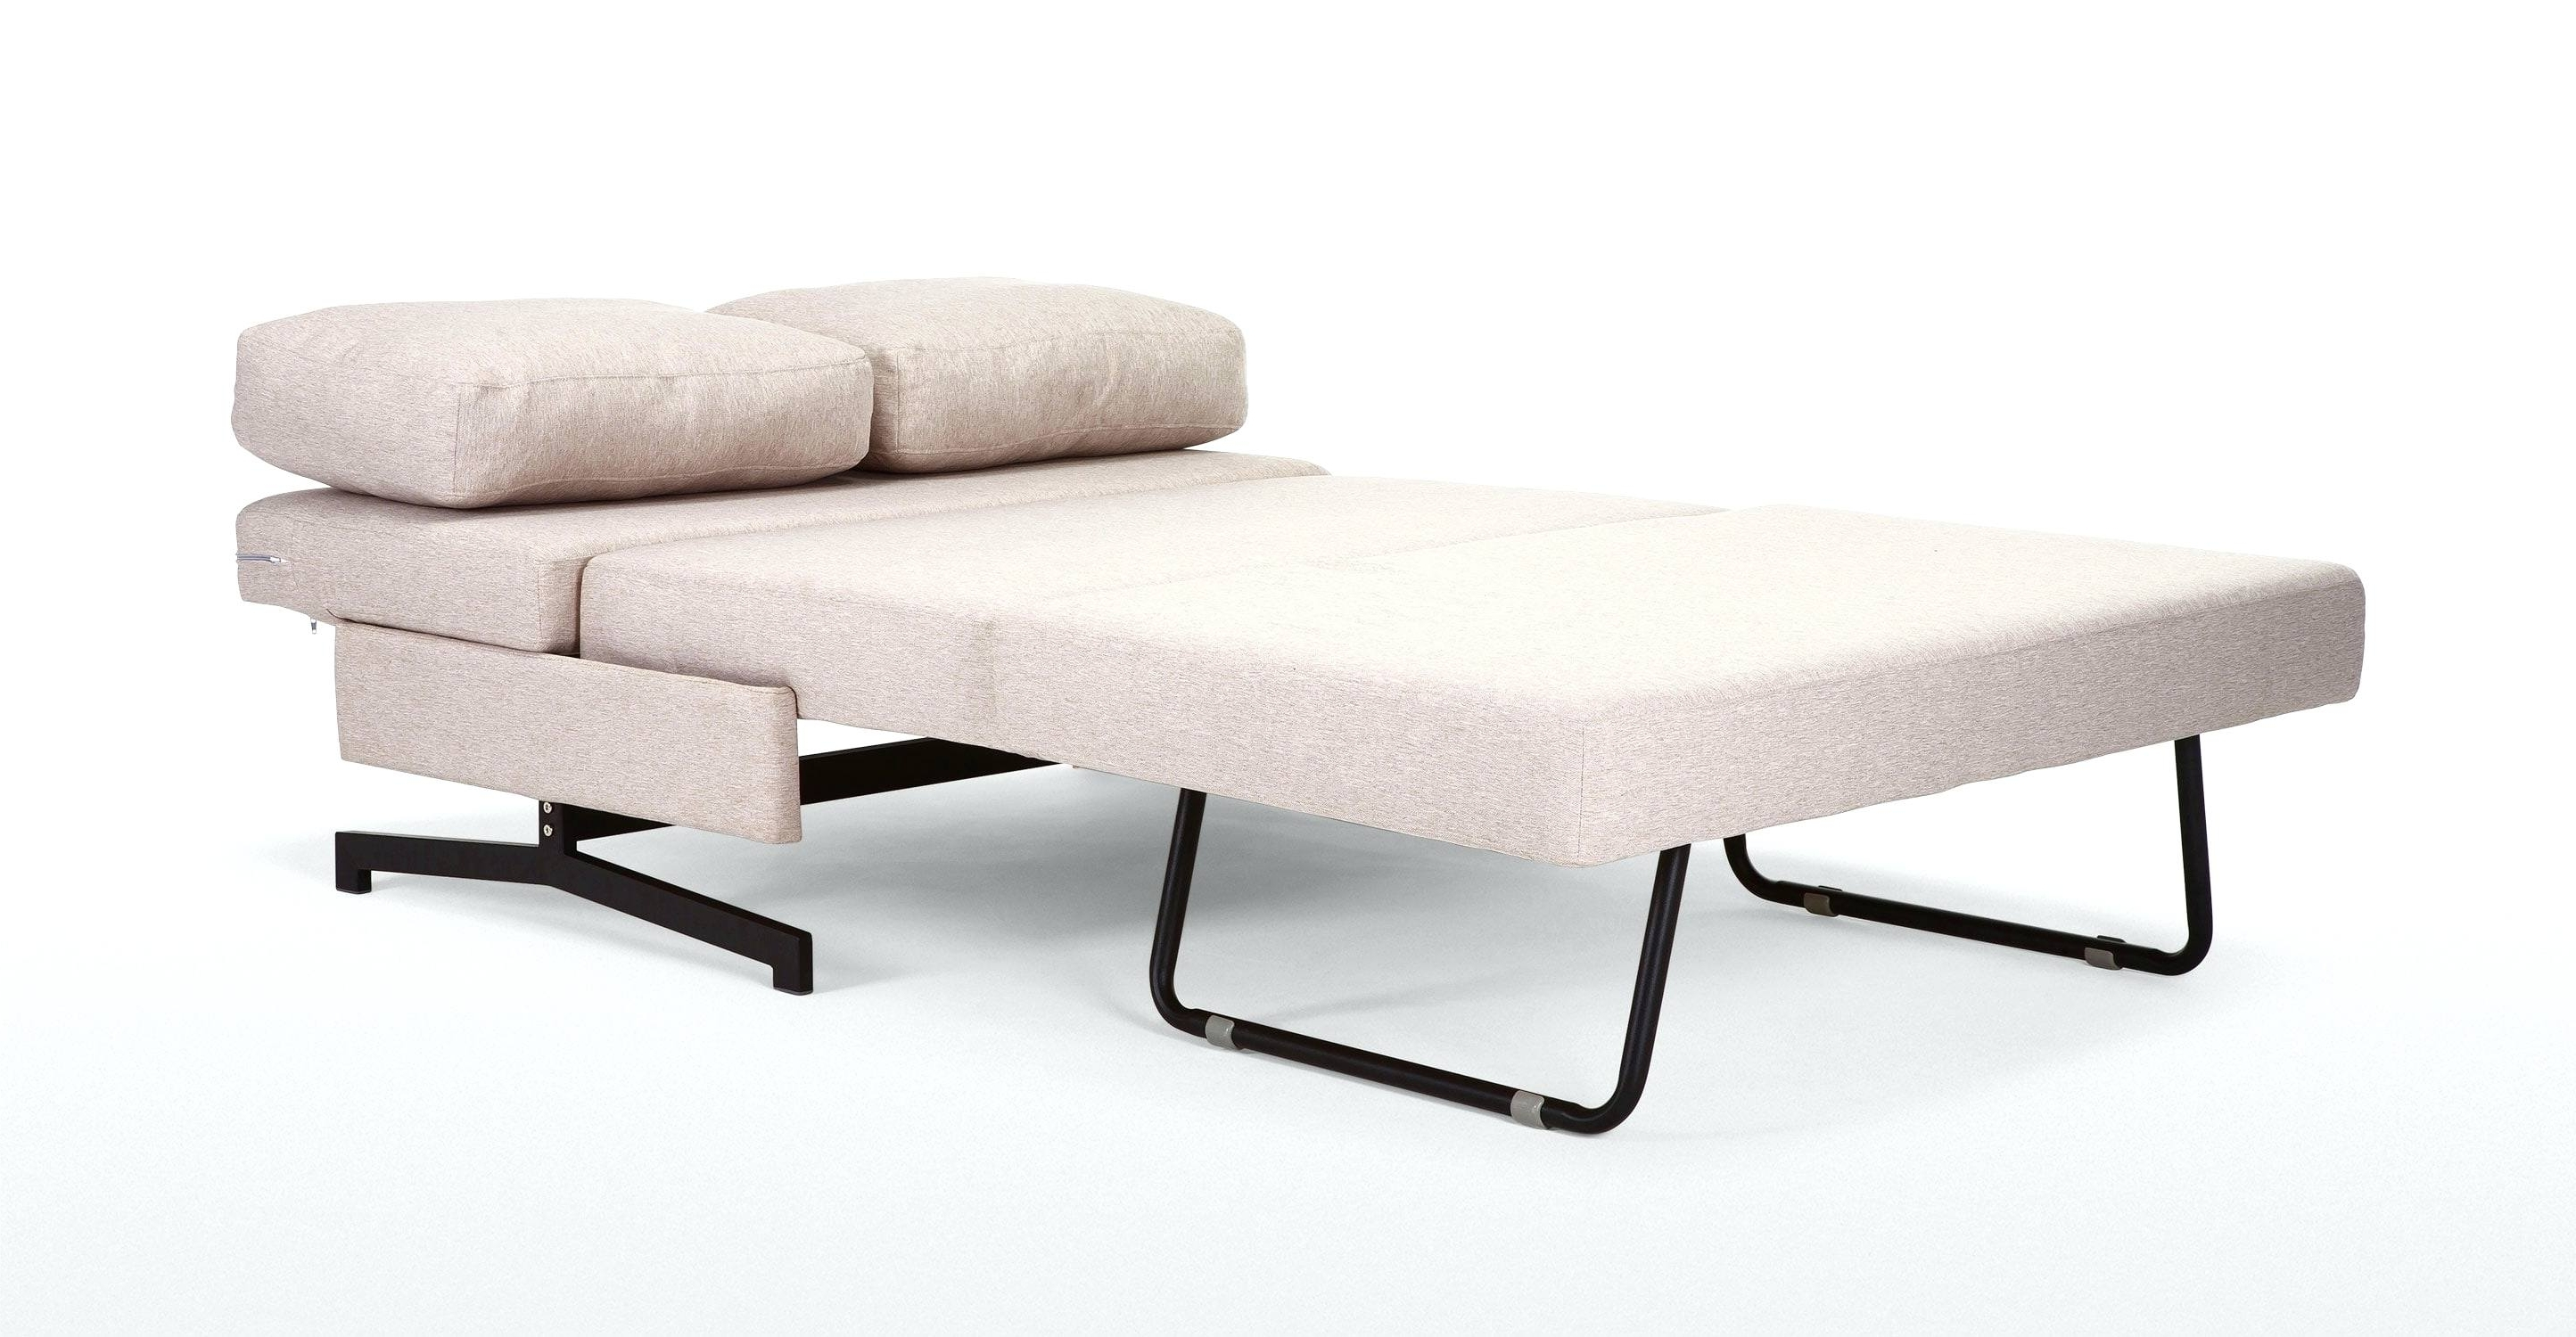 Most Popular Armless Sofas Sectional For Small Spaces Sofa Bed Australia Sale With Regard To Small Armless Sofas (View 9 of 15)